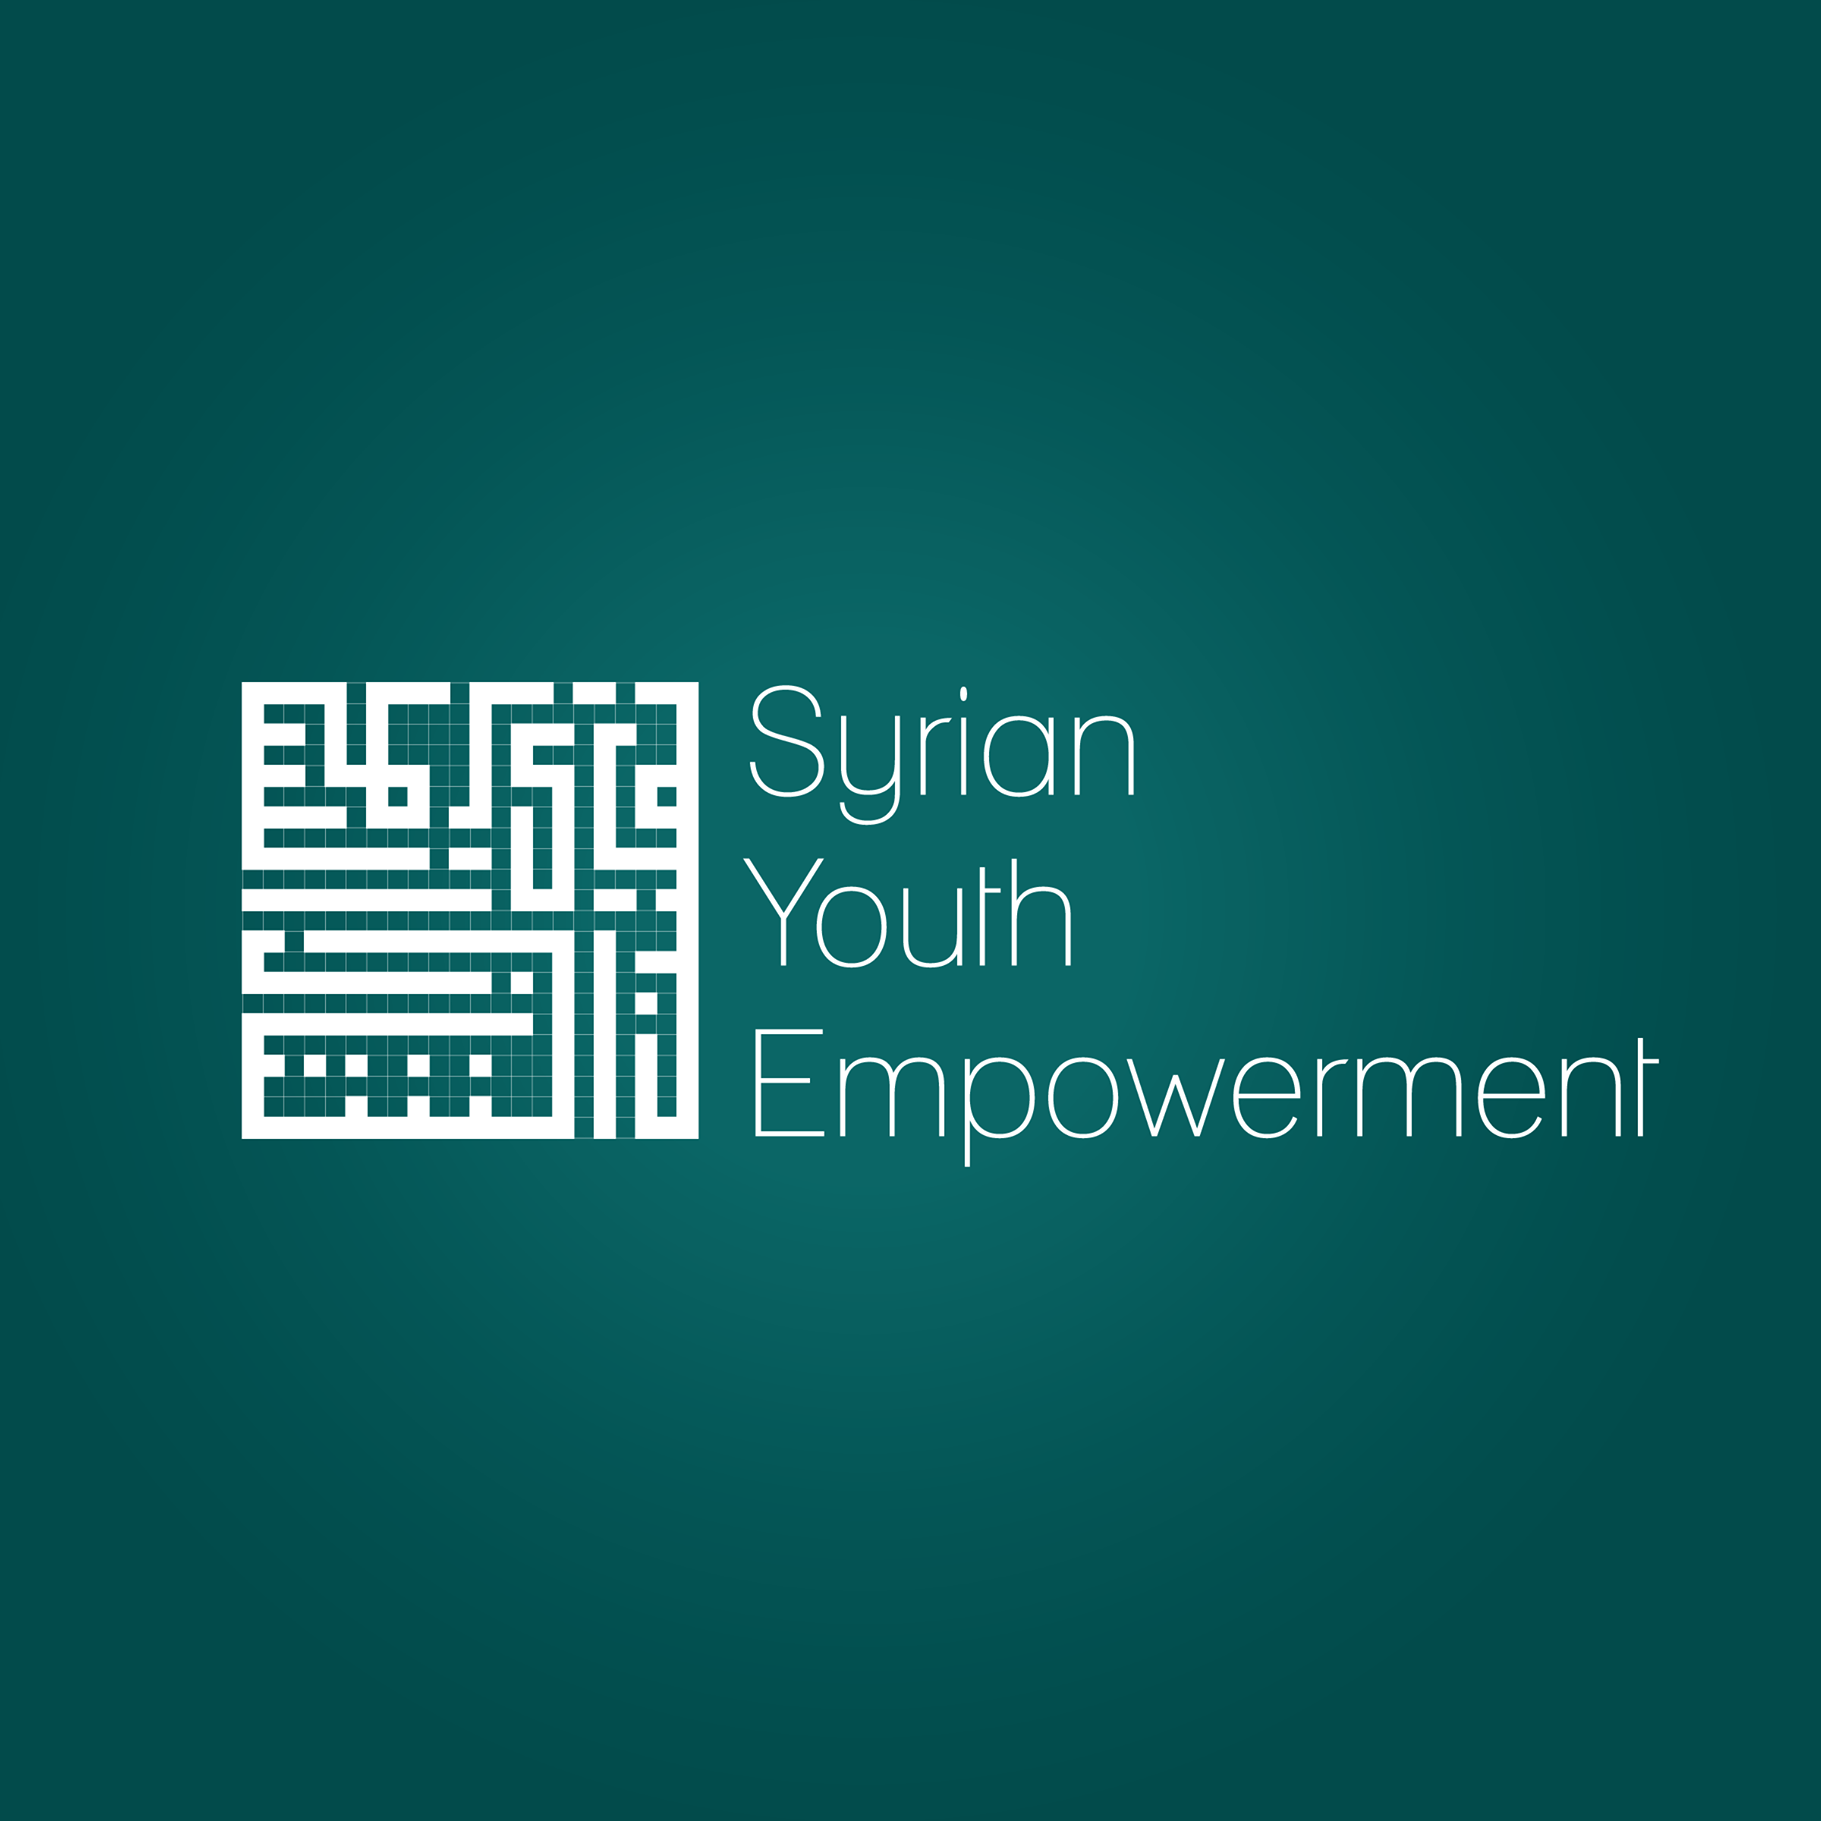 Syrian Youth Empowerment - Stanford students serve as year-long academic advisors to high-school students within Syria interested in going to the US, Europe for university.To serve as a mentor, apply here